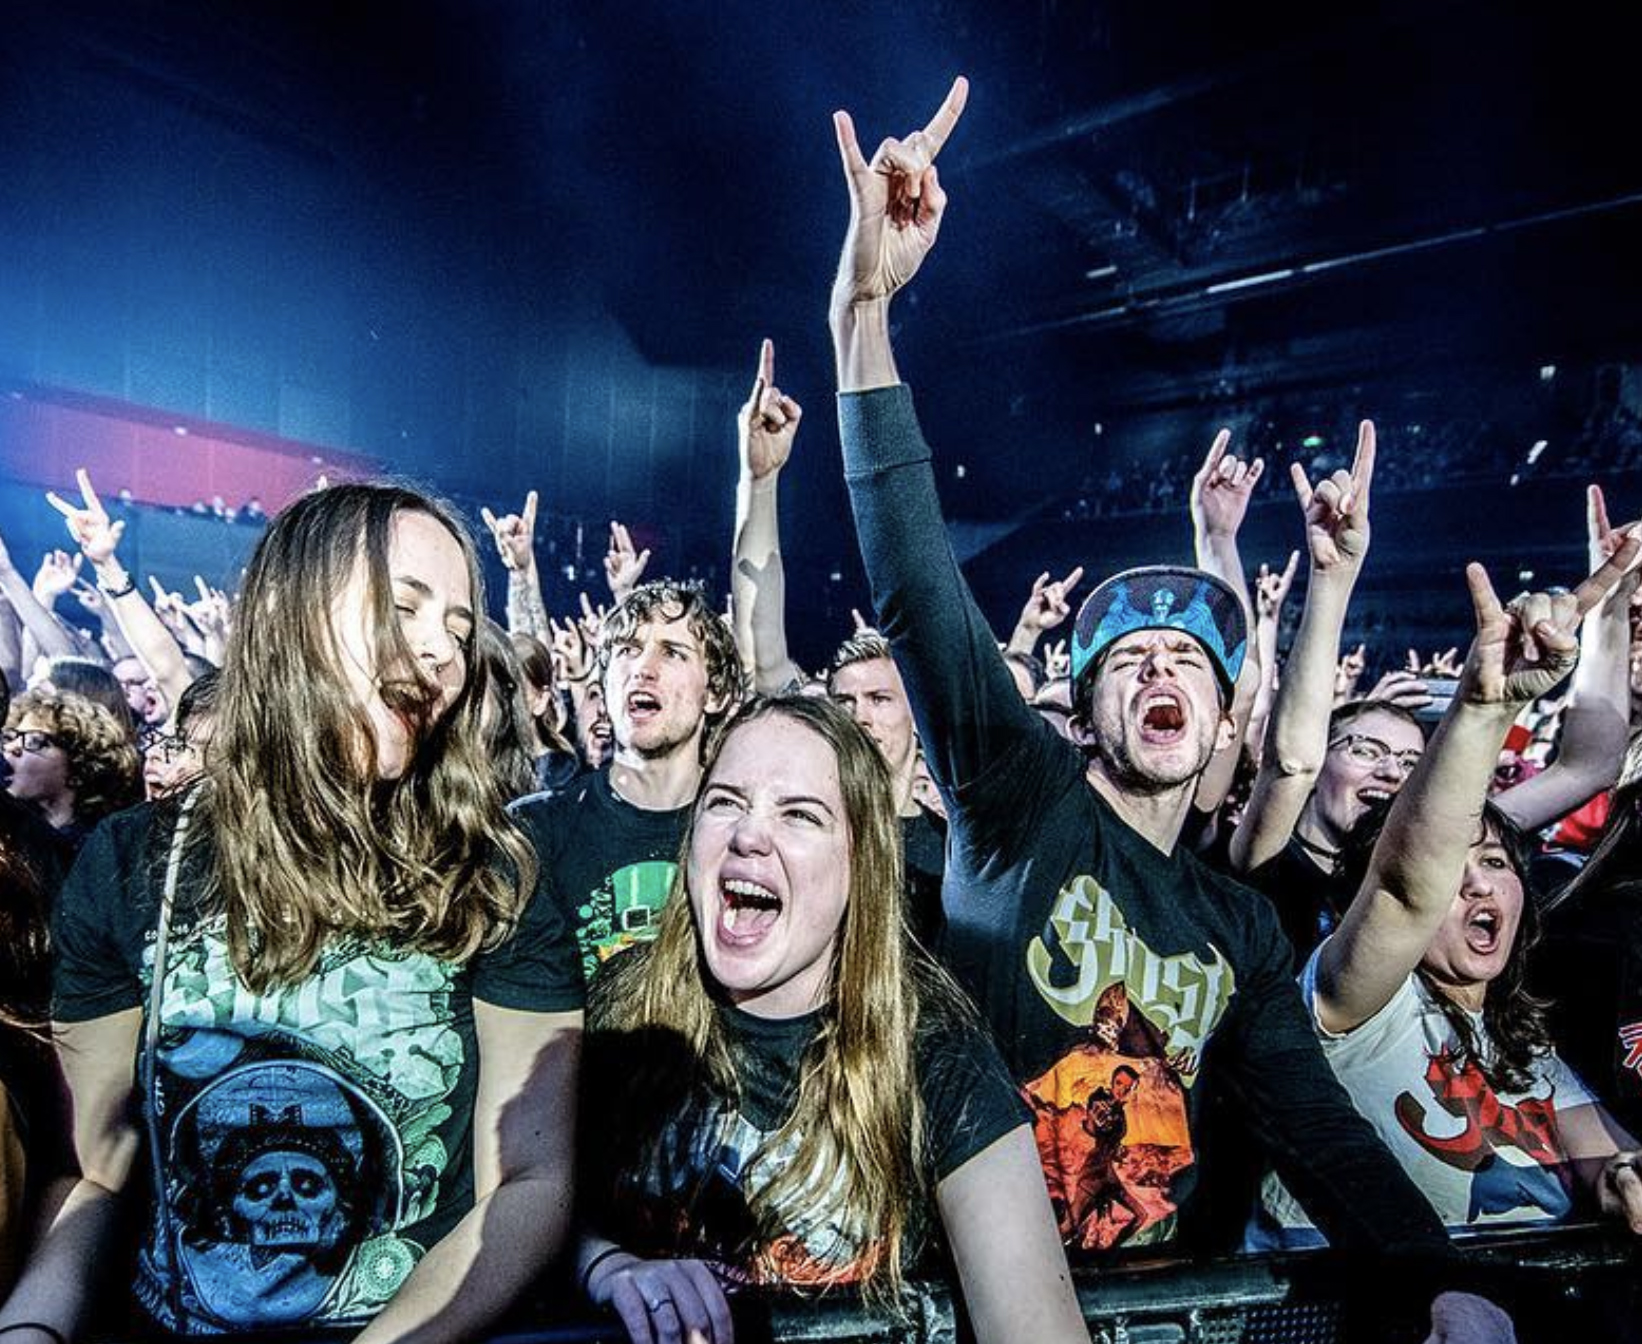 GHOST fans    Ferdy Damman photography